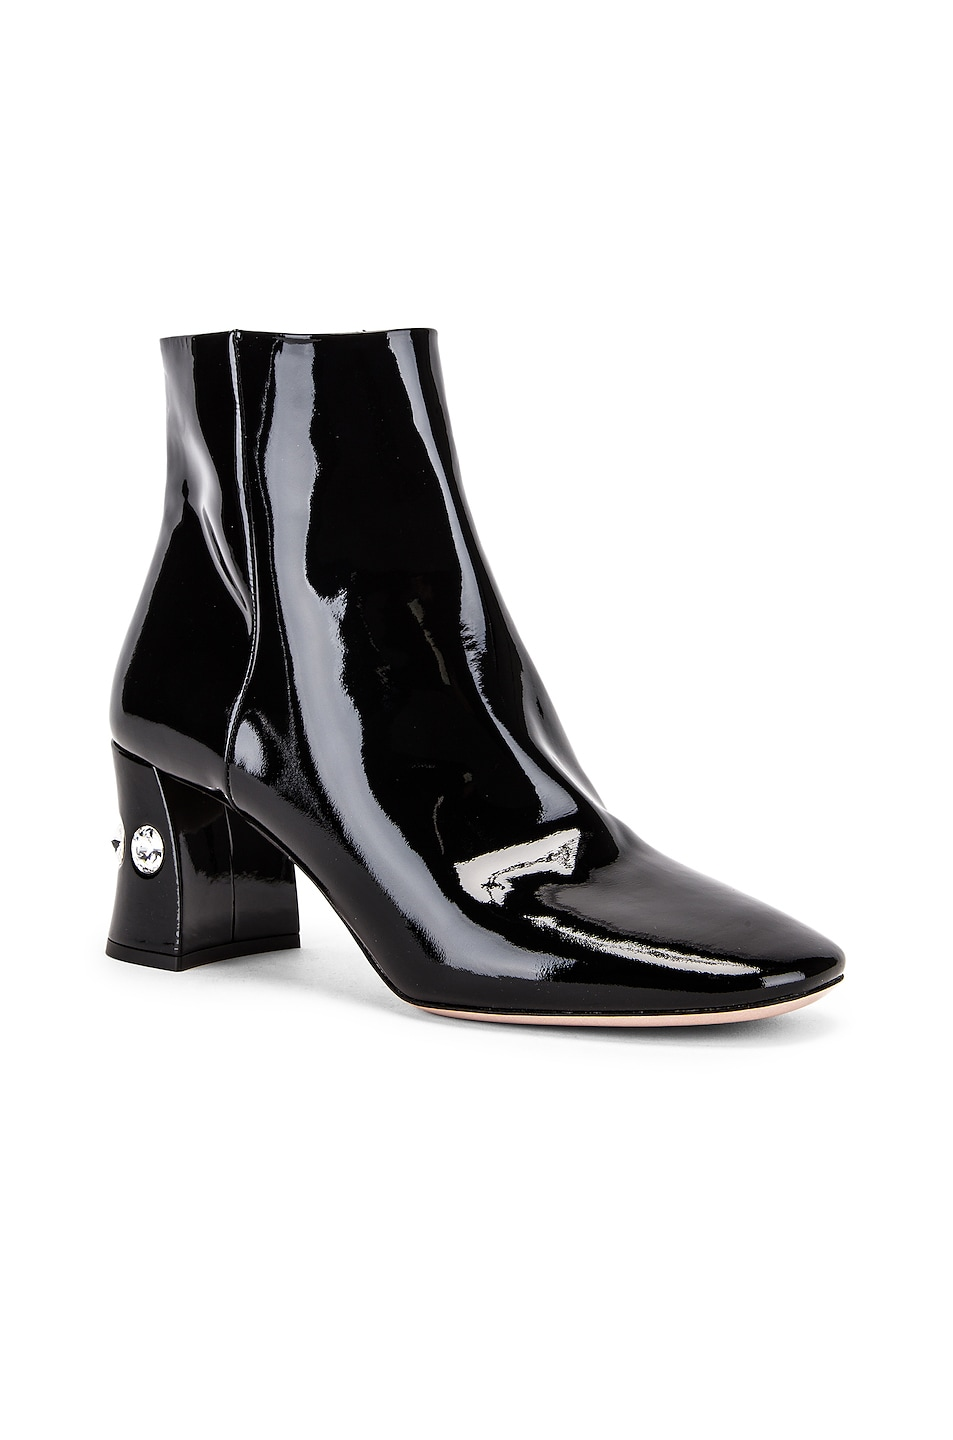 Image 2 of Miu Miu Jeweled Ankle Boots in Black